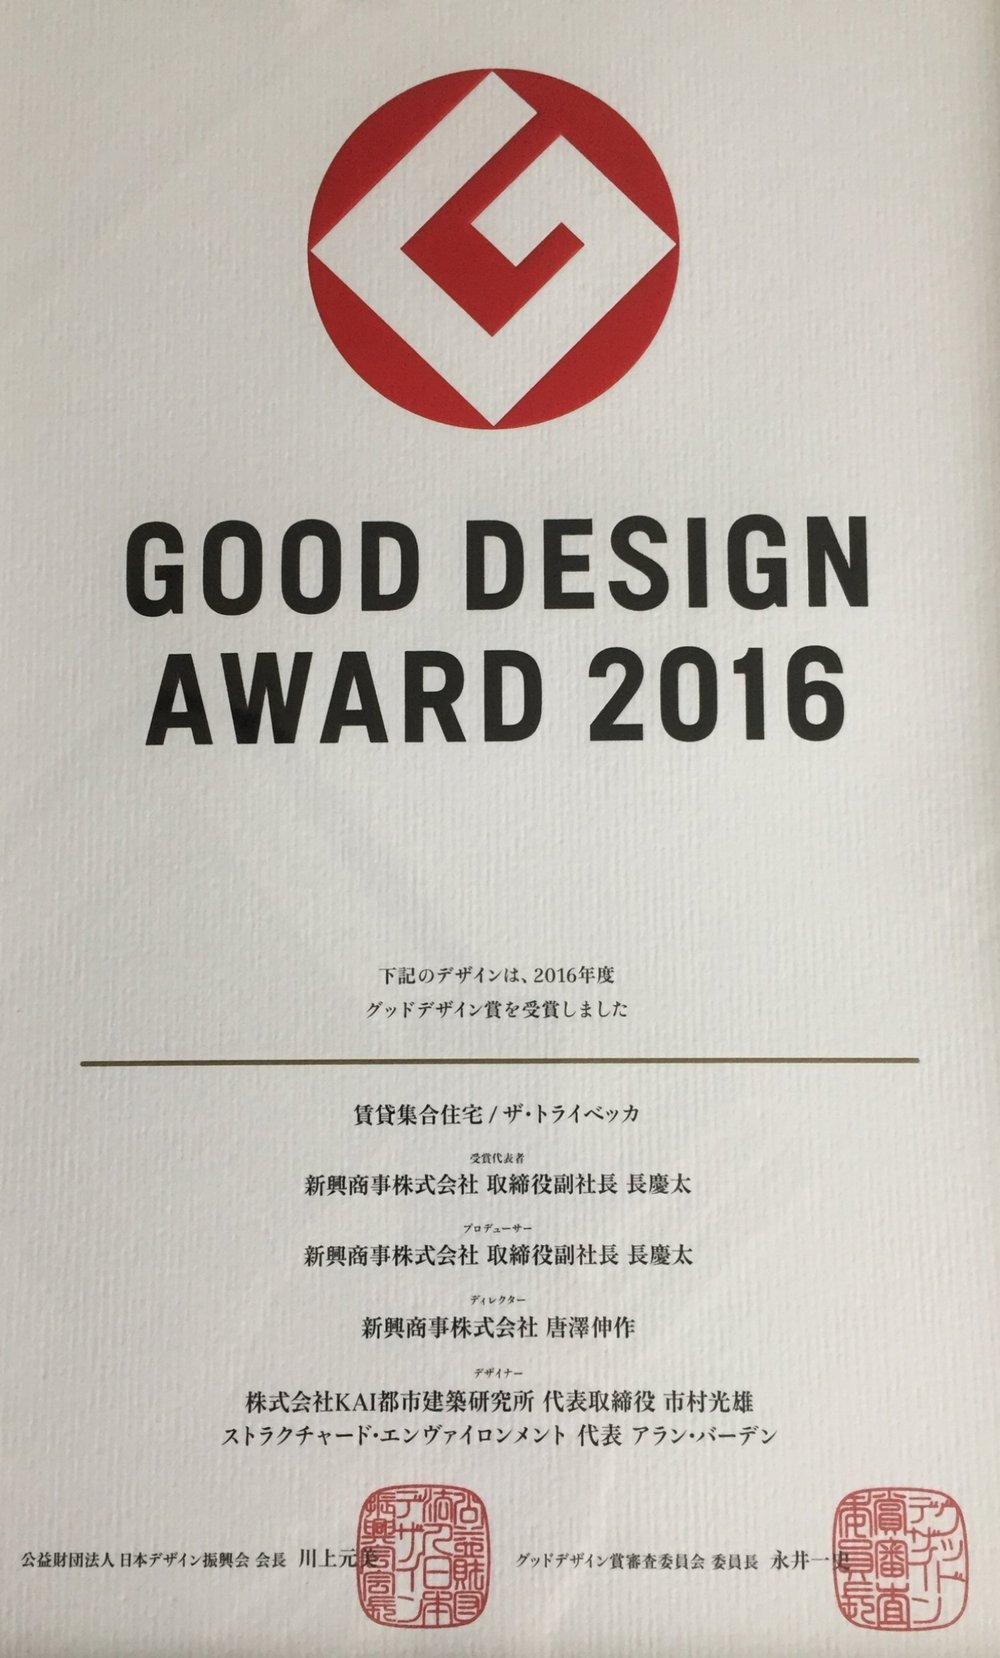 Good Design Award 2016